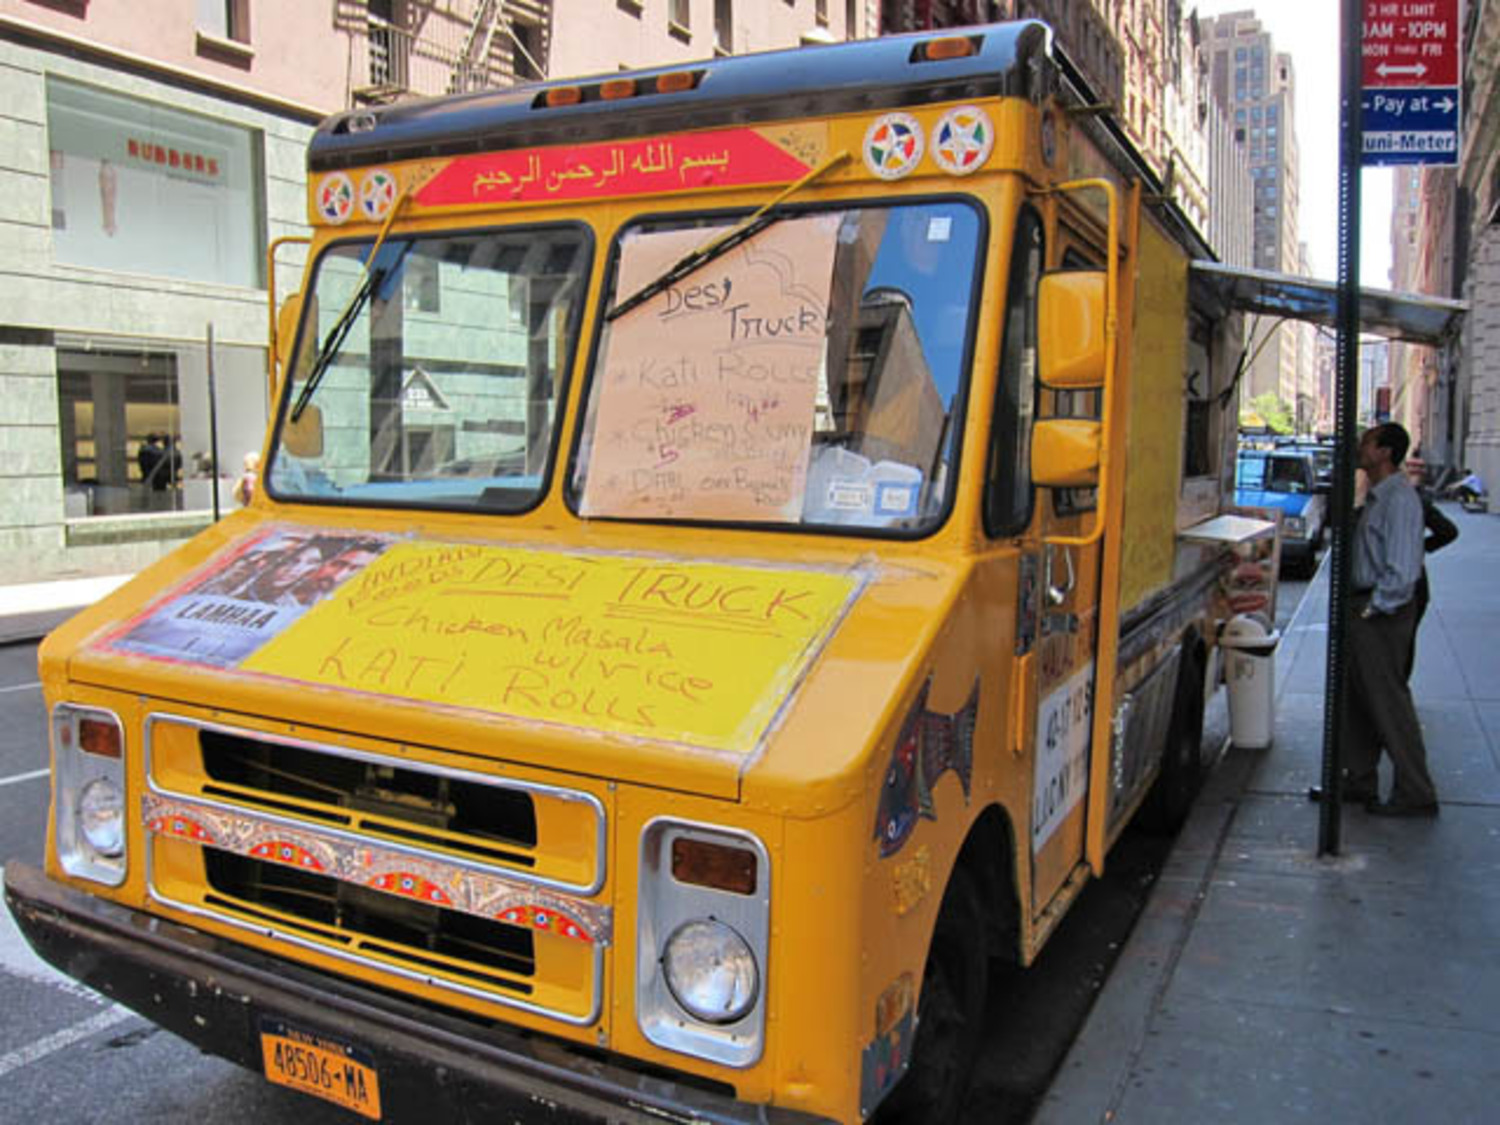 Desi Truck - Indian Food Truck NYC